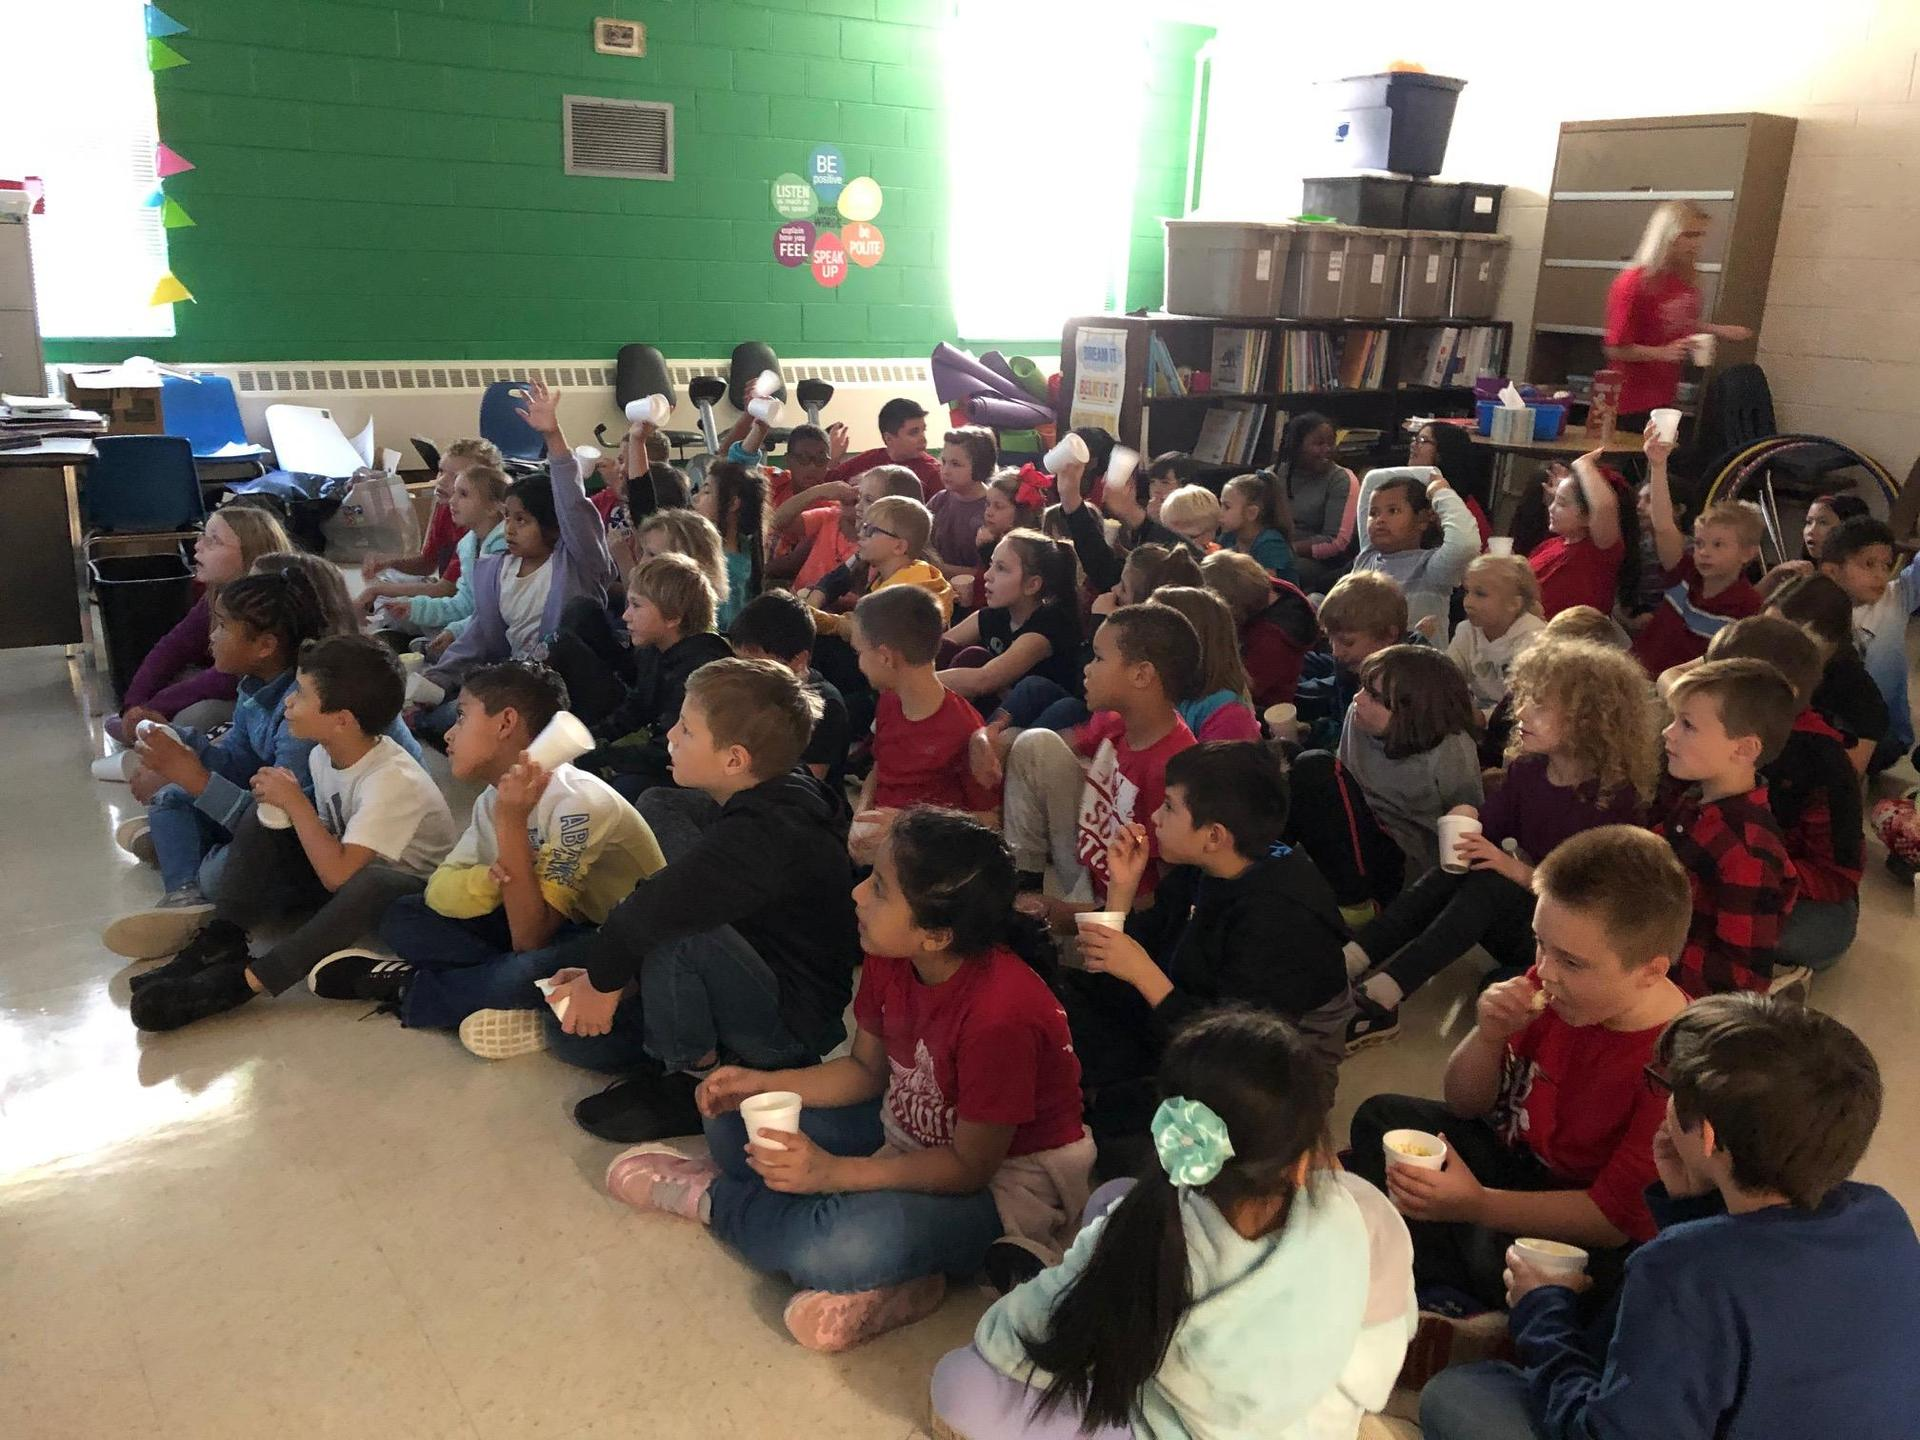 Students enjoy watching a movie and eating popcorn